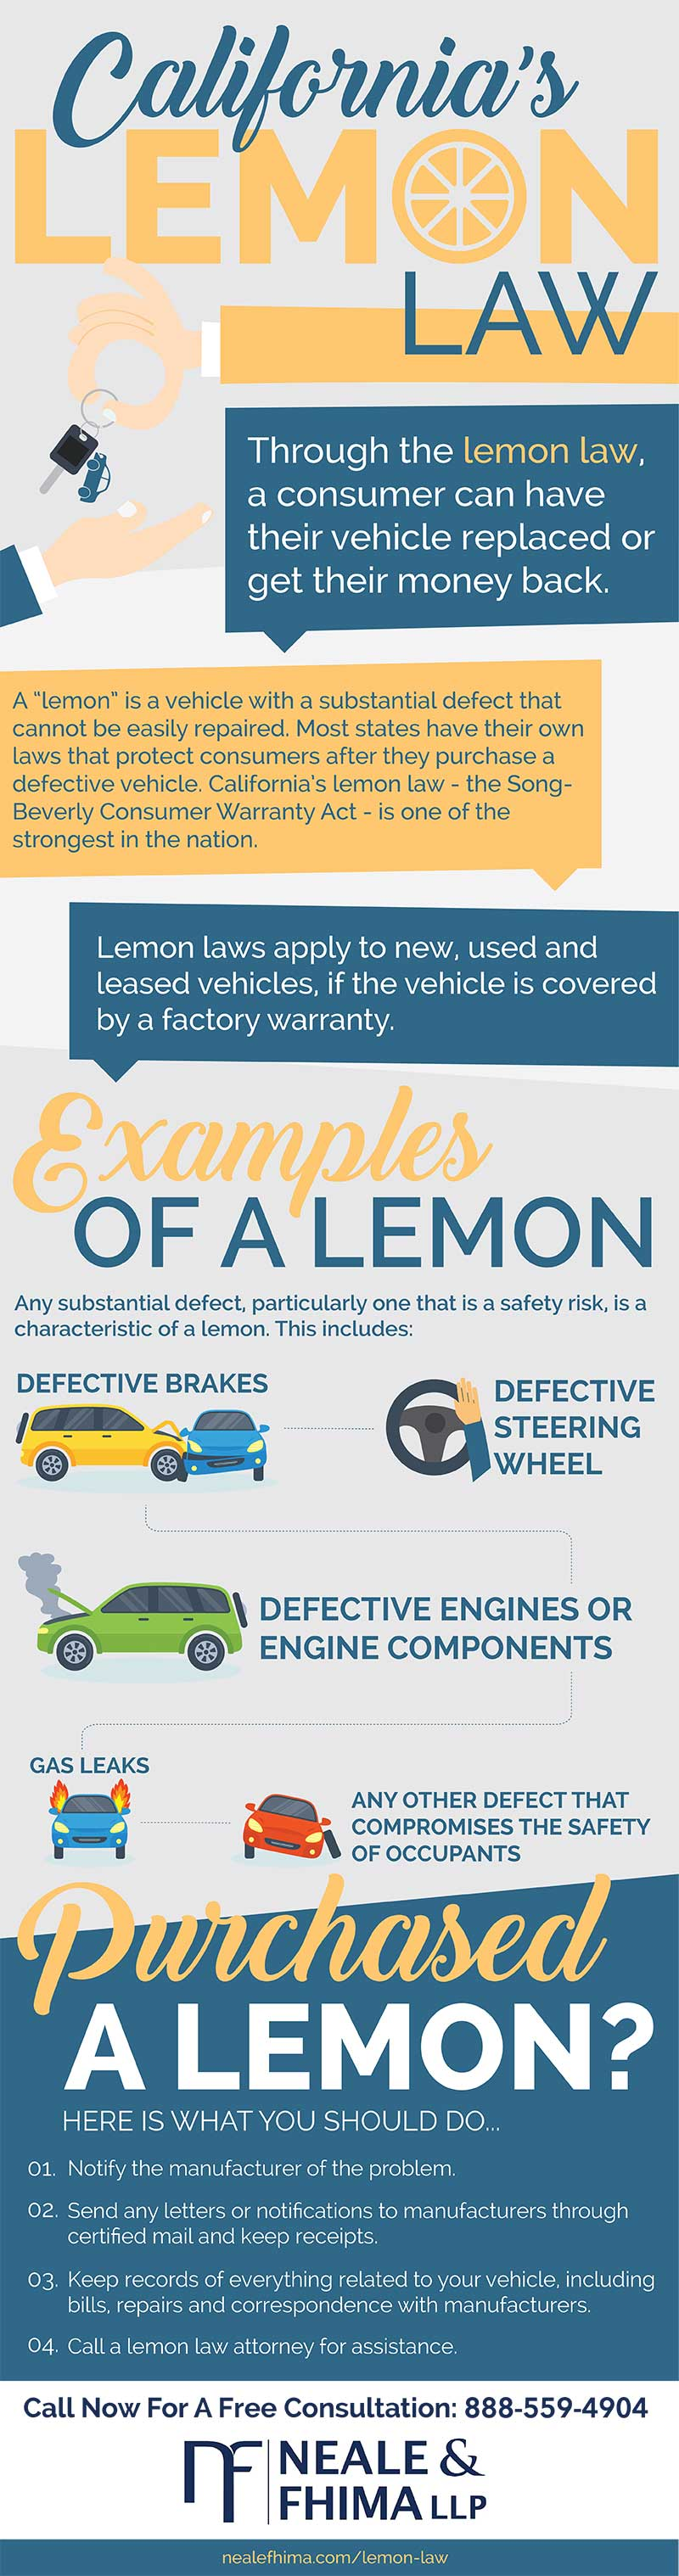 Califonia's Lemon Law